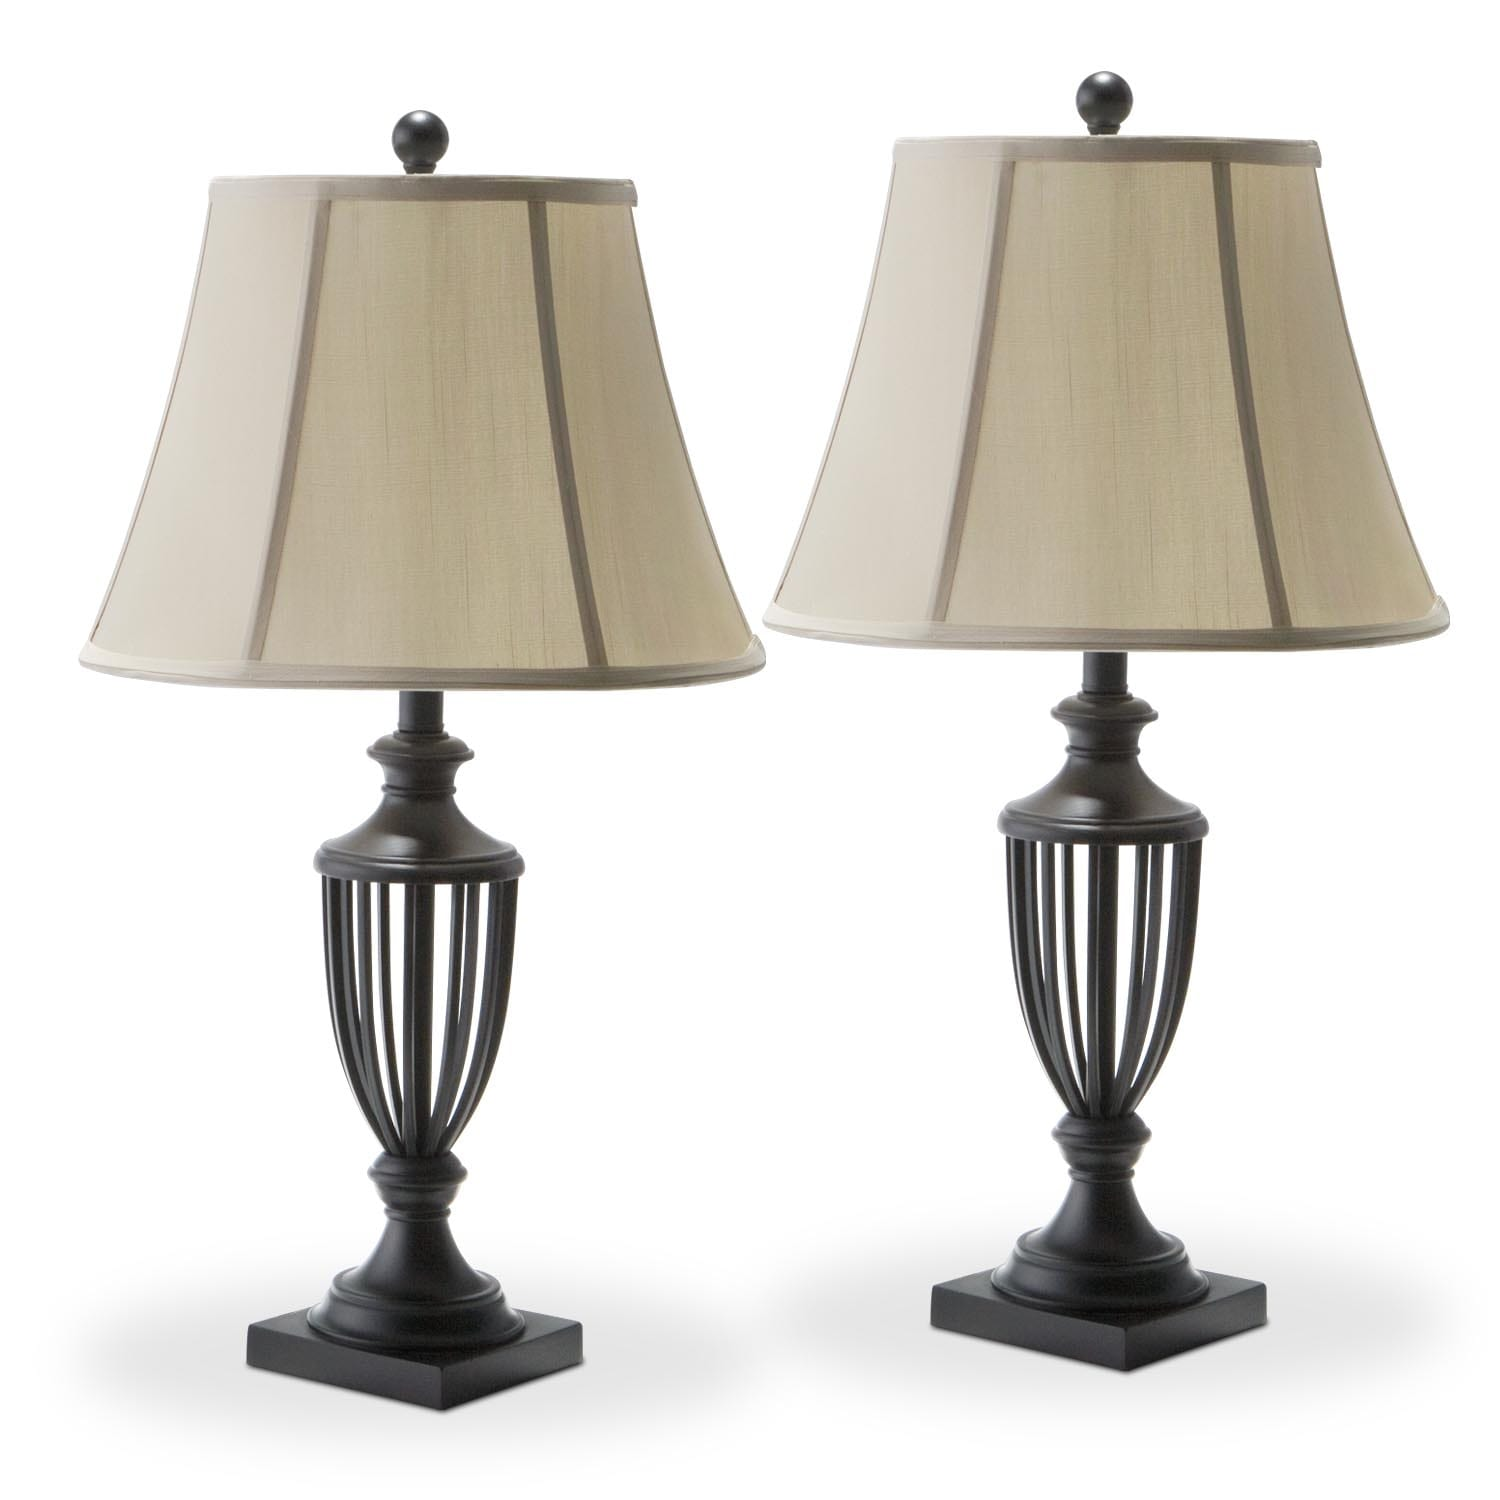 Home Accessories - Mason Set of 2 Table Lamps